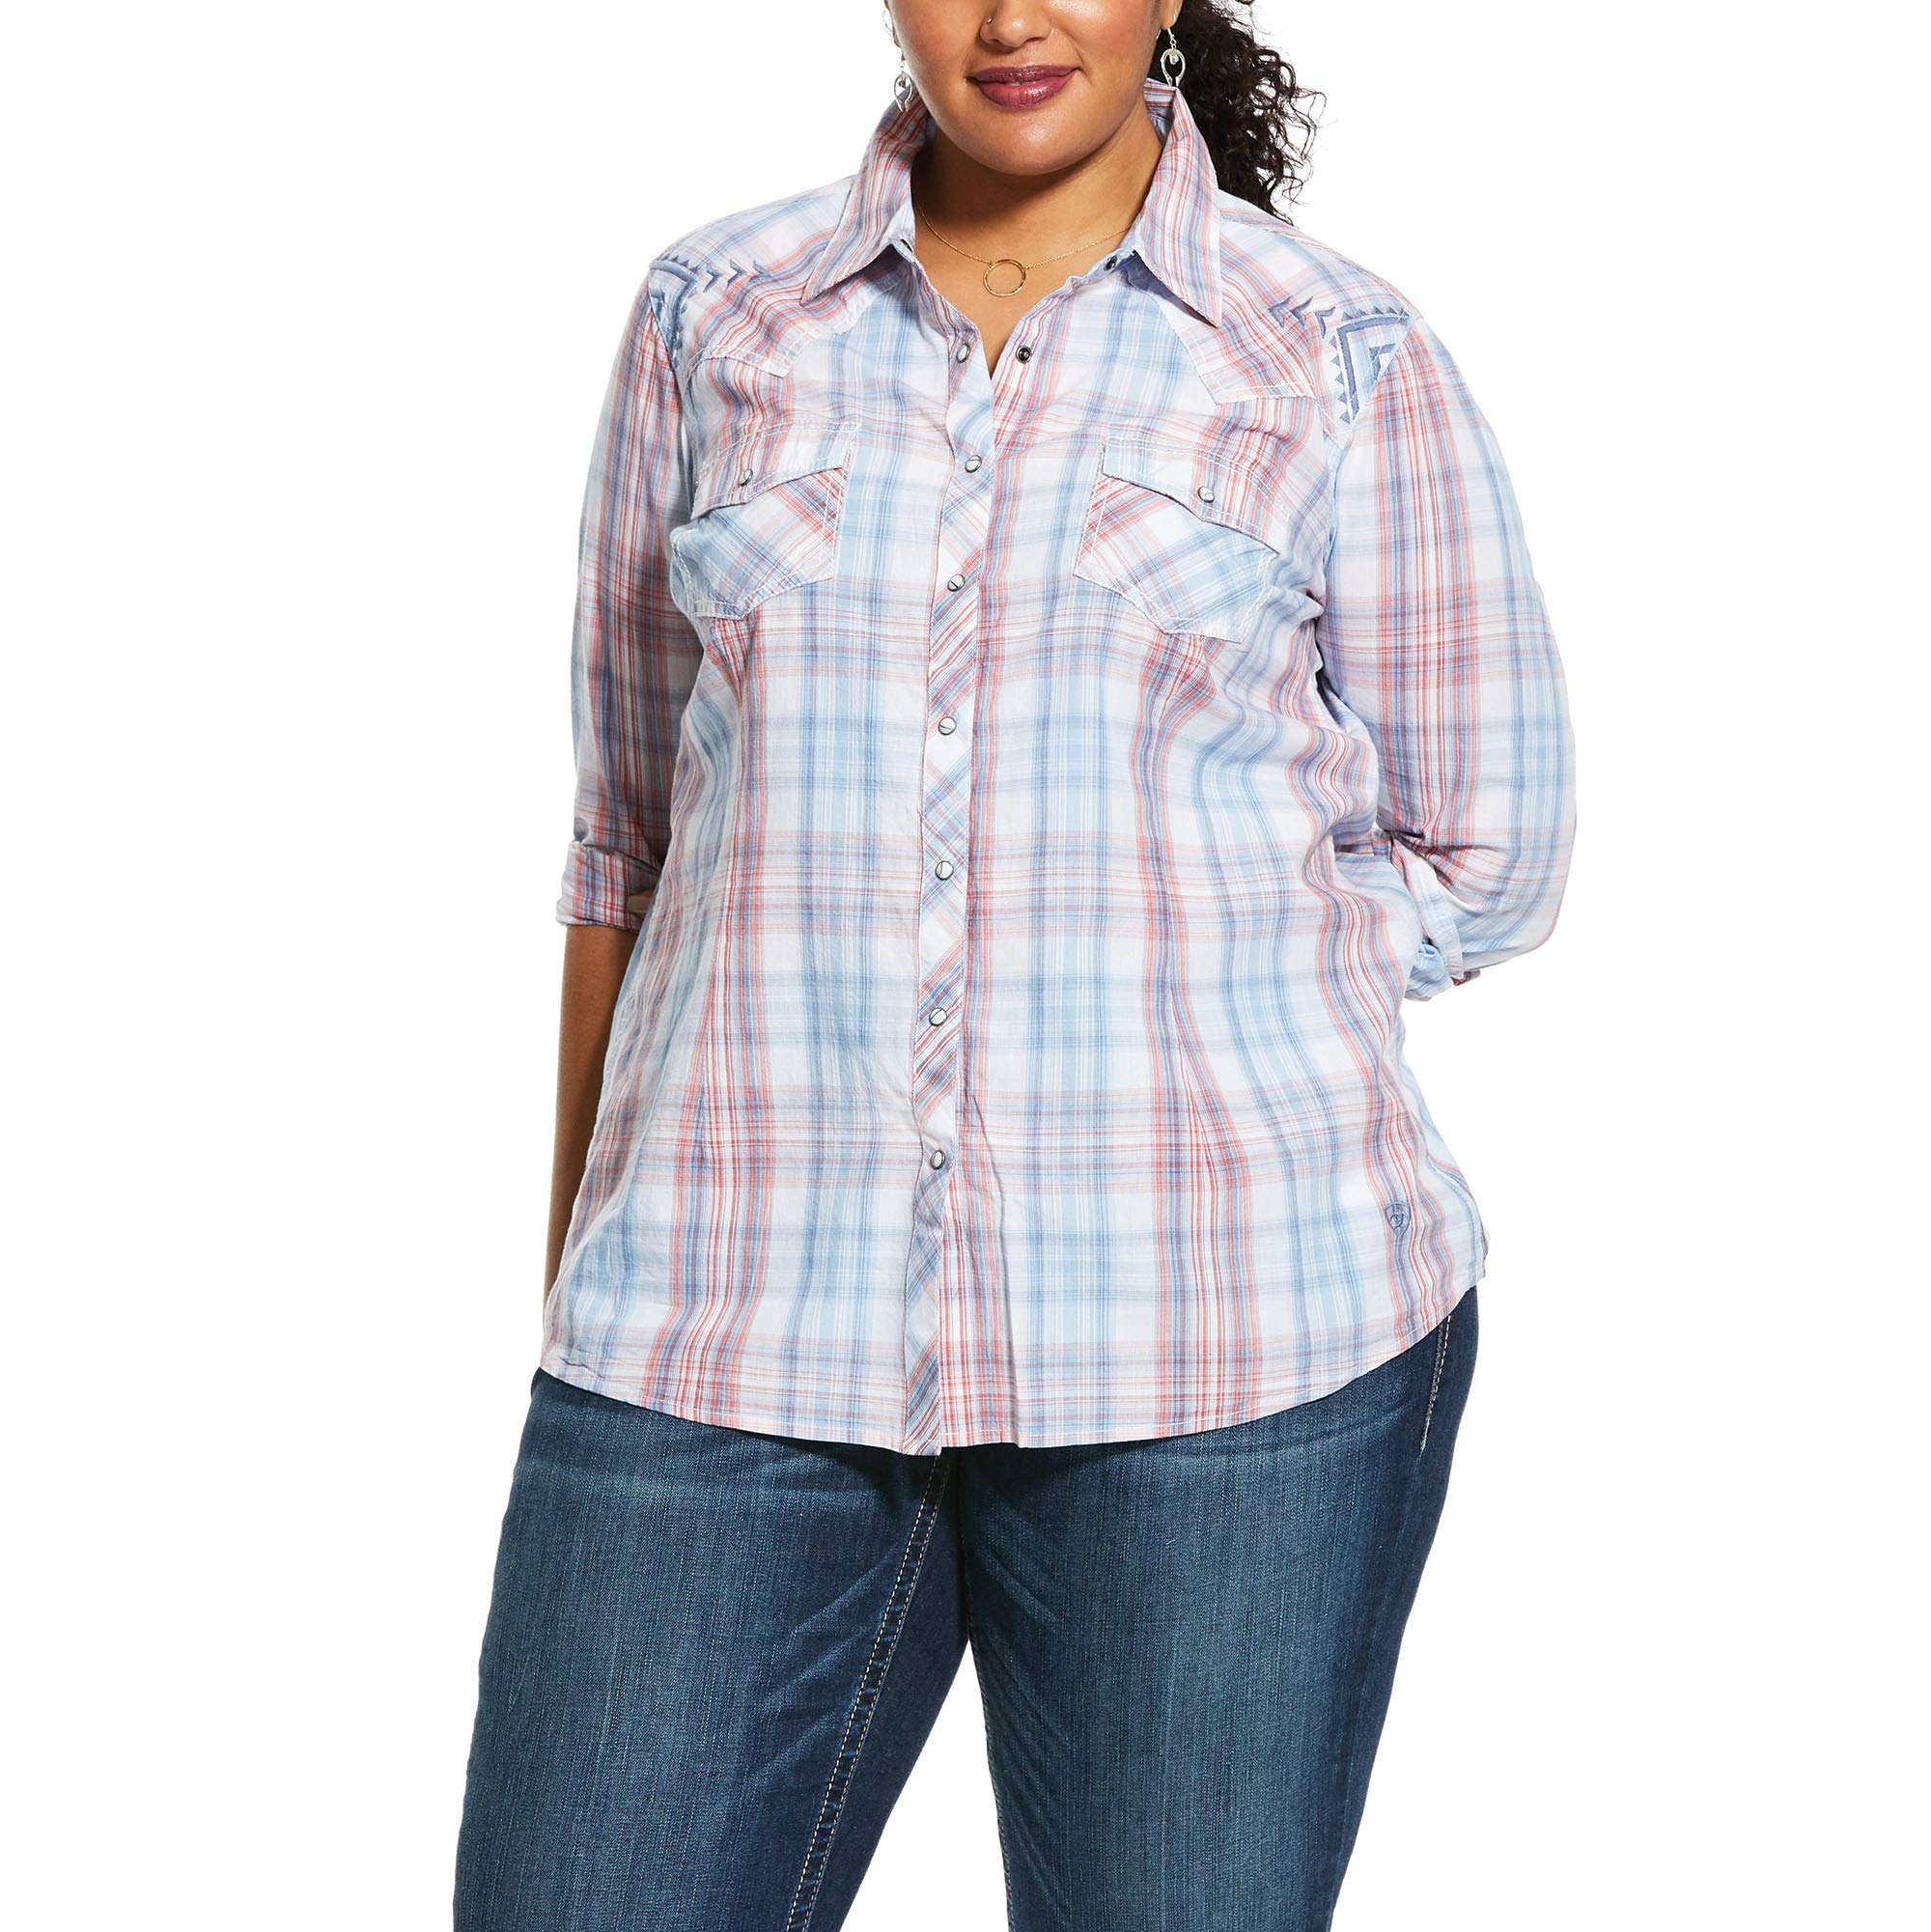 ARIAT Women's Real Lovely Snap Shirt, Multi, 3X R by ARIAT